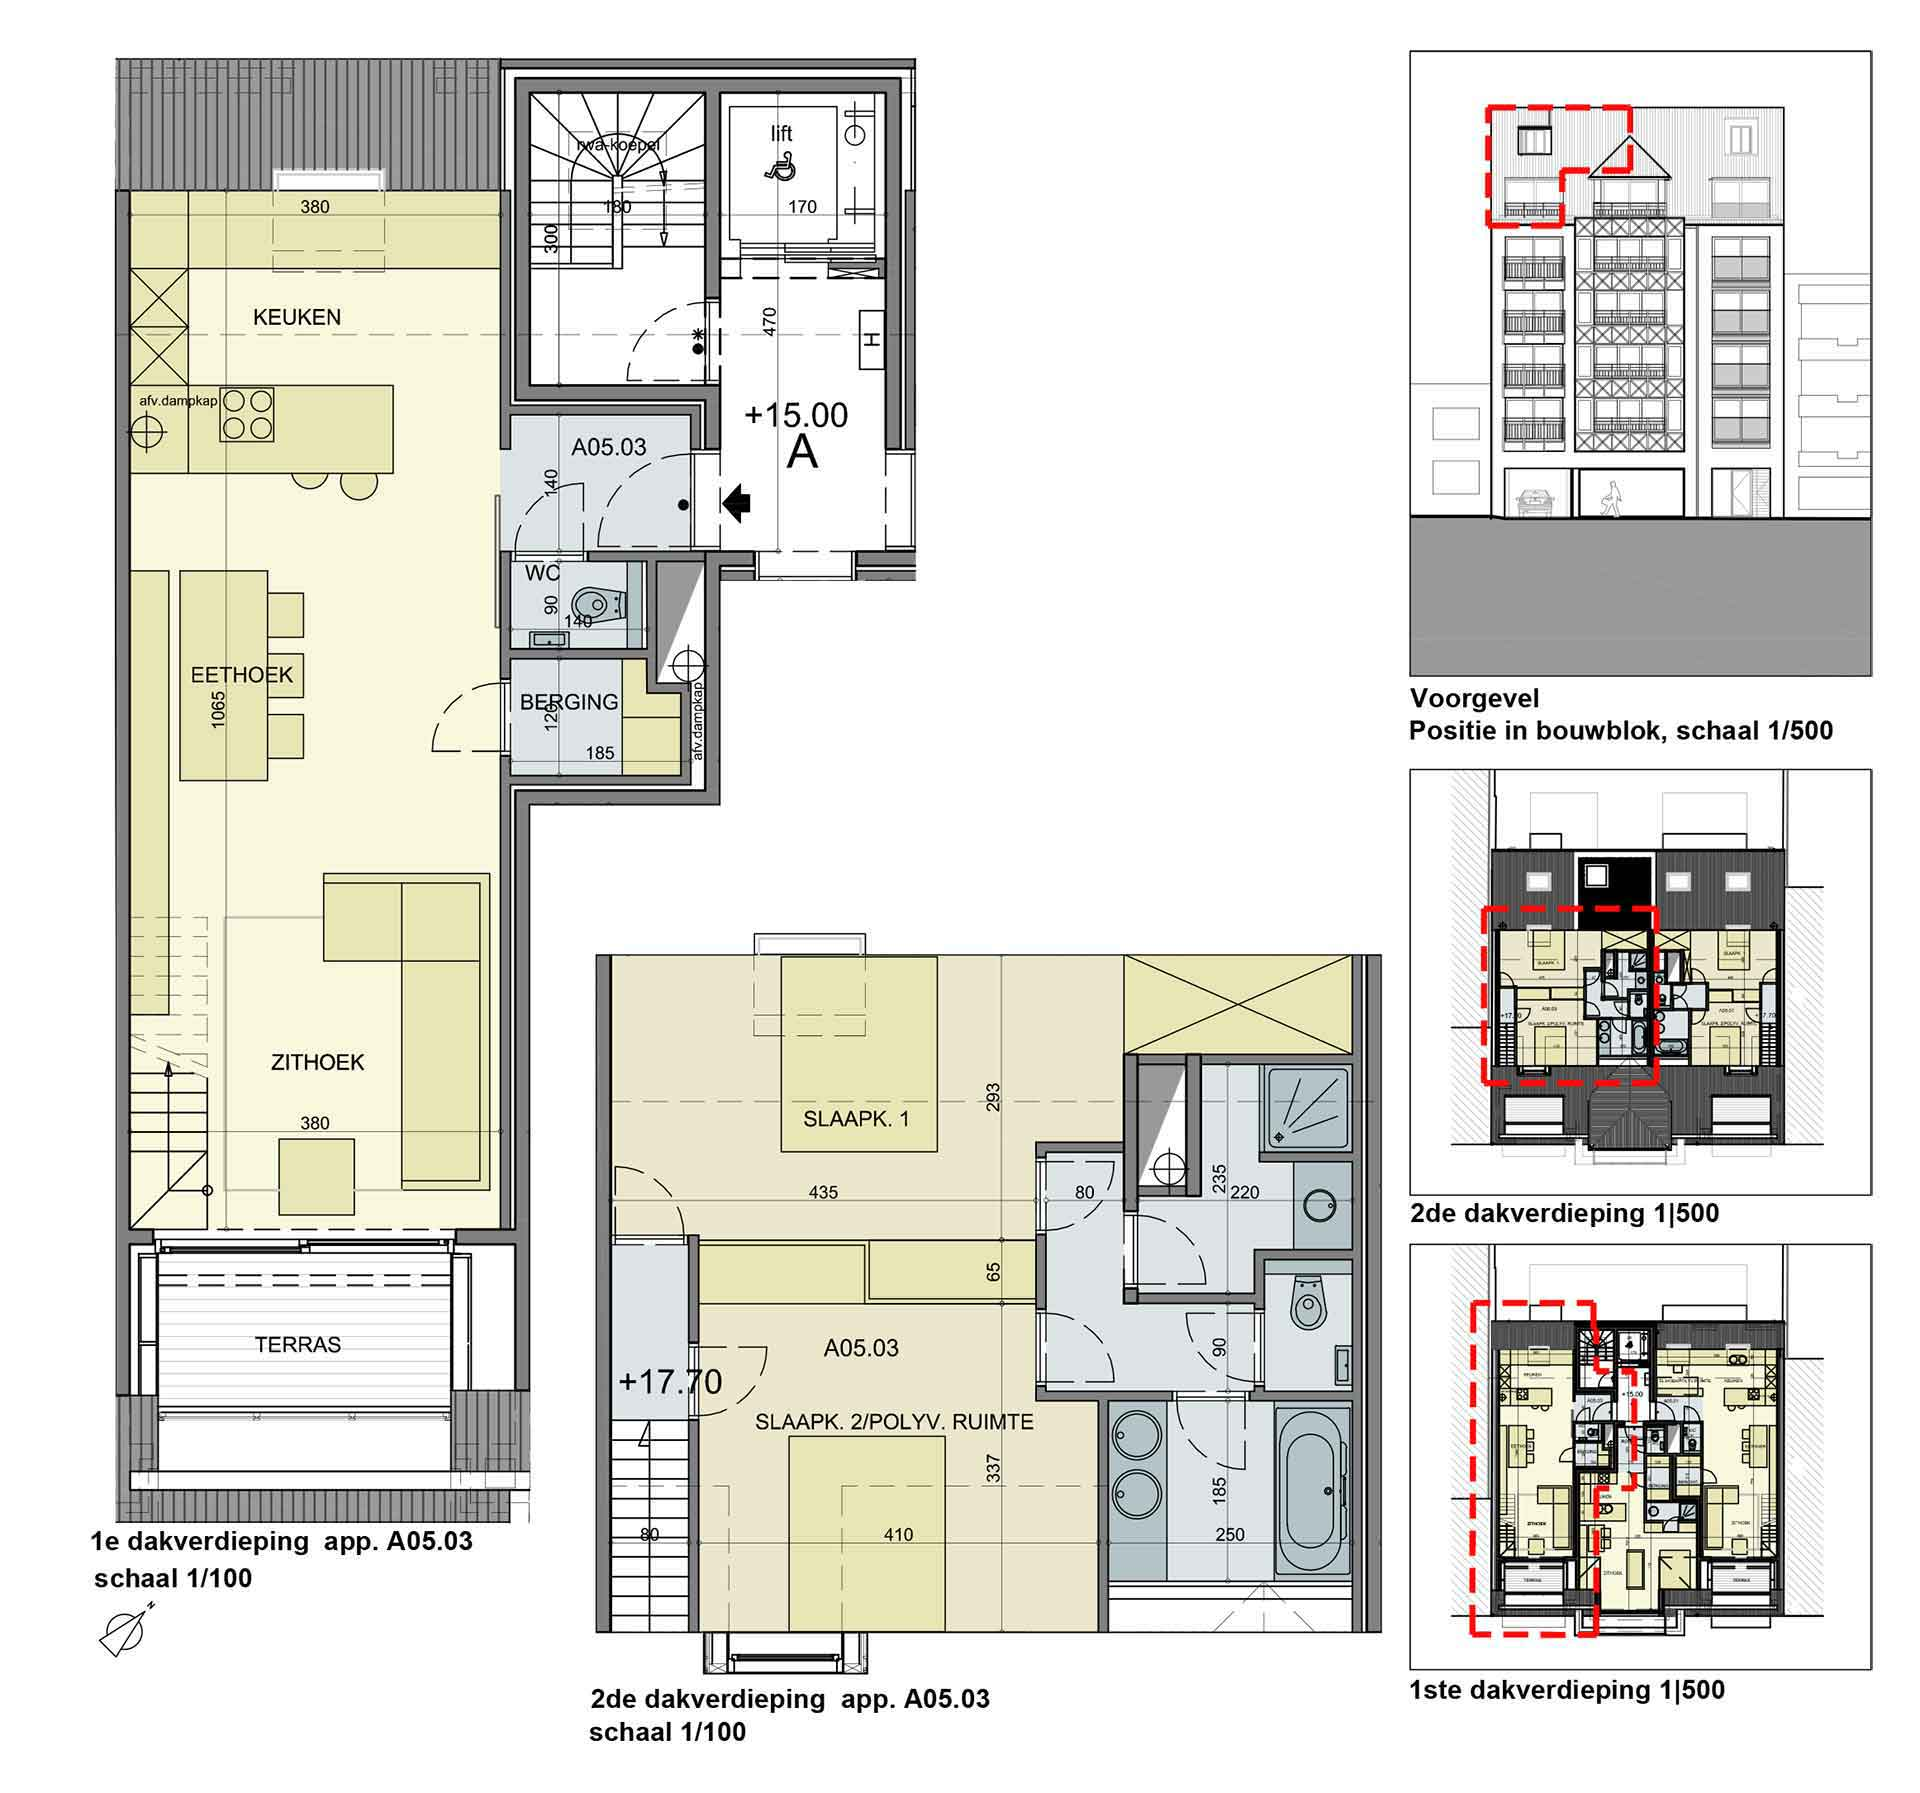 Residentie <br/> Trouville - image nieuwbouwappartement-nieuwpoort-residentie-trouville-5.3 on https://hoprom.be